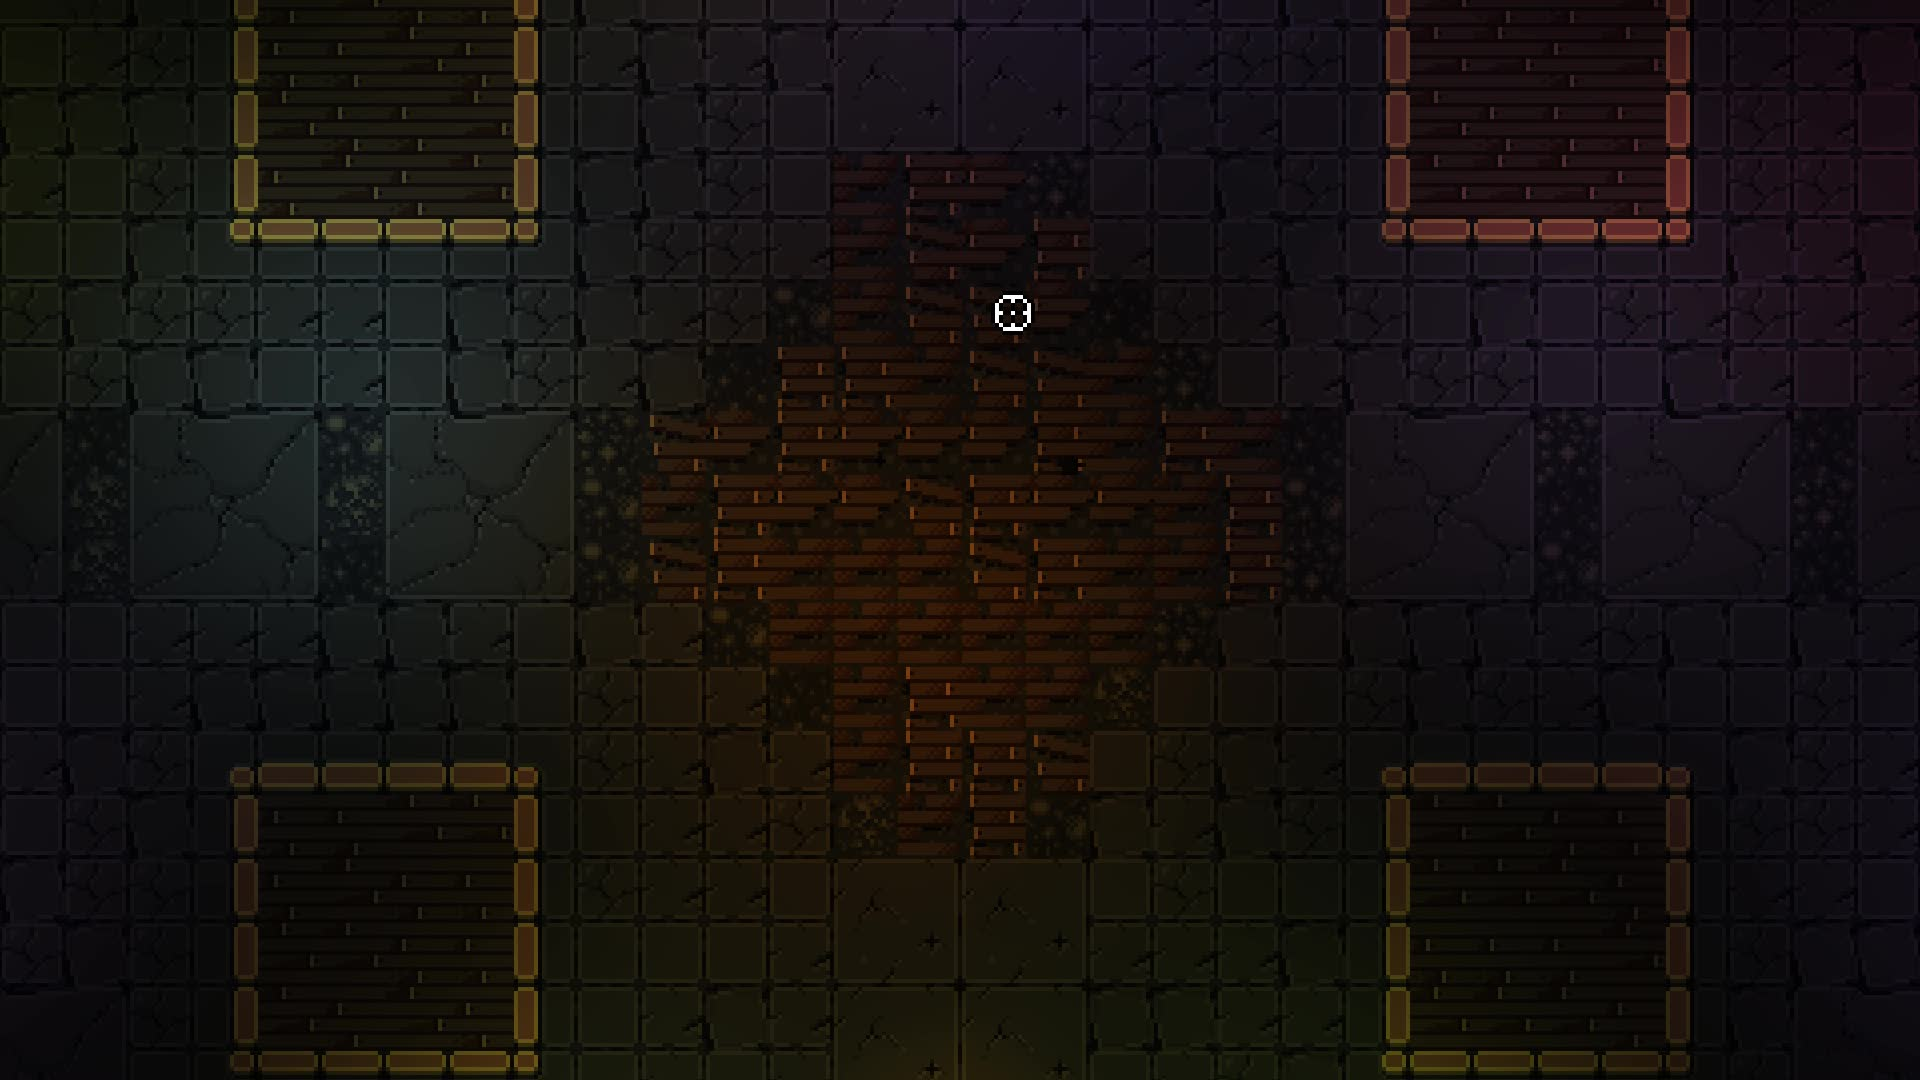 enterthegungeon, vlc-record-2018-07-30-15h00m08s-Enter the Gungeon 2018.07.30 - 14.35.54.06.DVR.mp4- GIFs